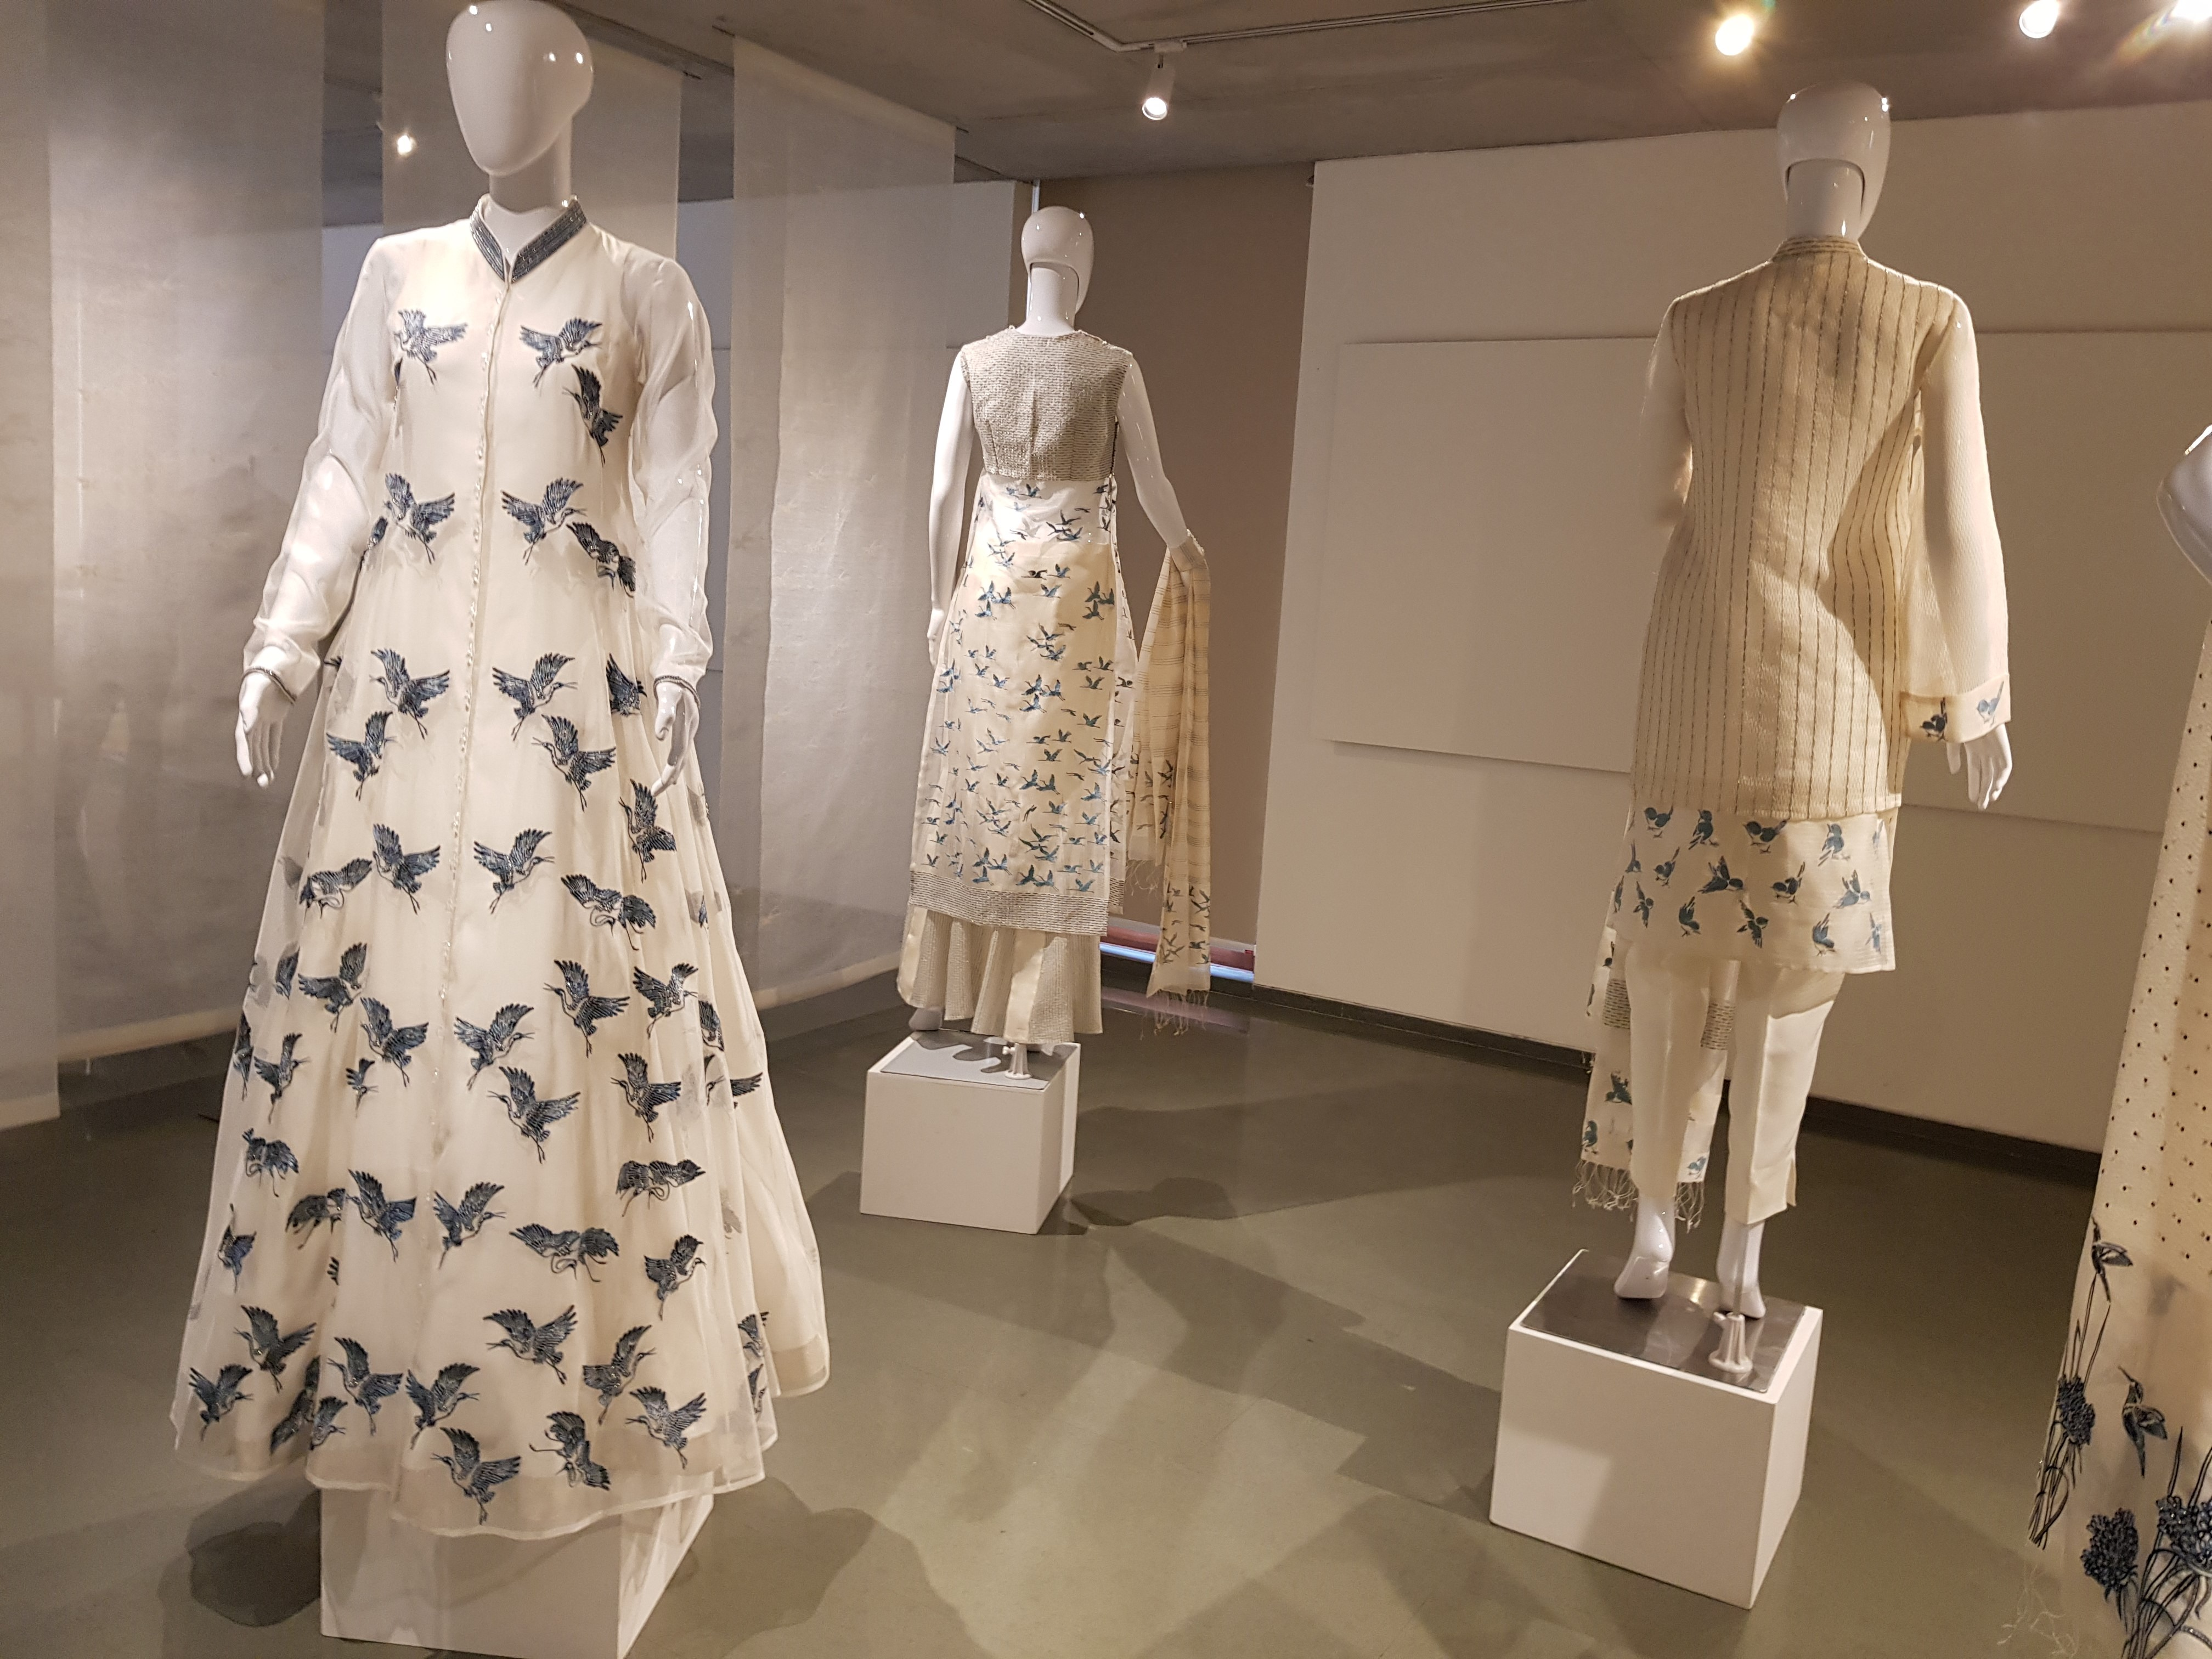 Asif Shaikh, Ciceroni, A confluence of Birds, textile exhibition, embroidery, world handmade textile Biennale, Ahmedabad, your local shopping guide, fashion, art exhibition in Ahmedabad, master embroider, fashion designer